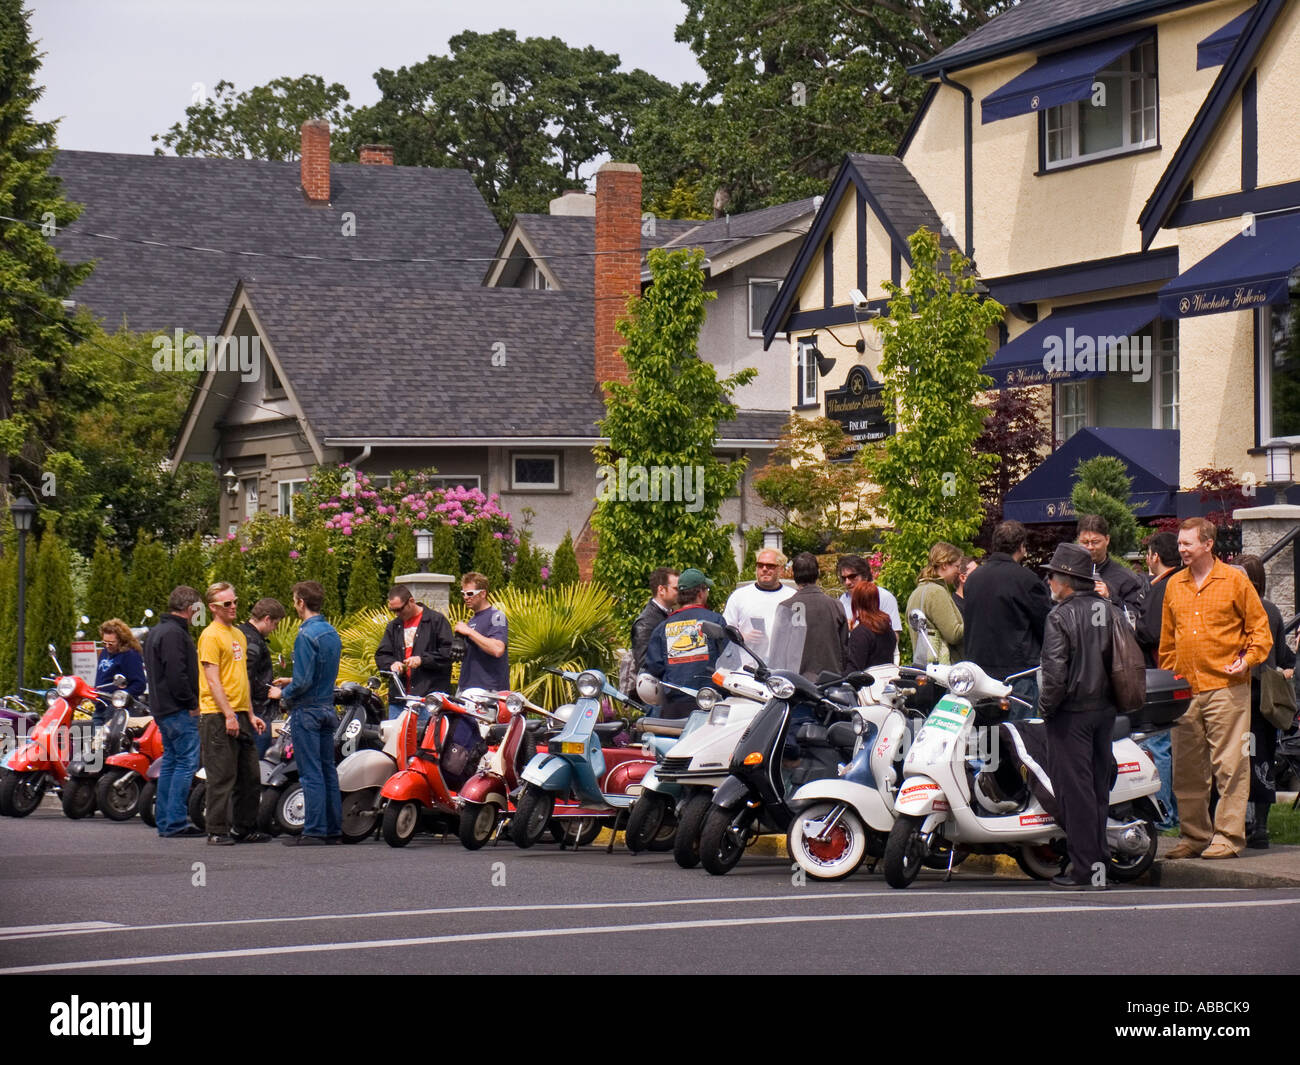 Motorcycle gloves victoria bc - Scooter Club Gathers On Residential Neighborhood Street Corner In Oak Bay Area Of Victoria Bc Canada